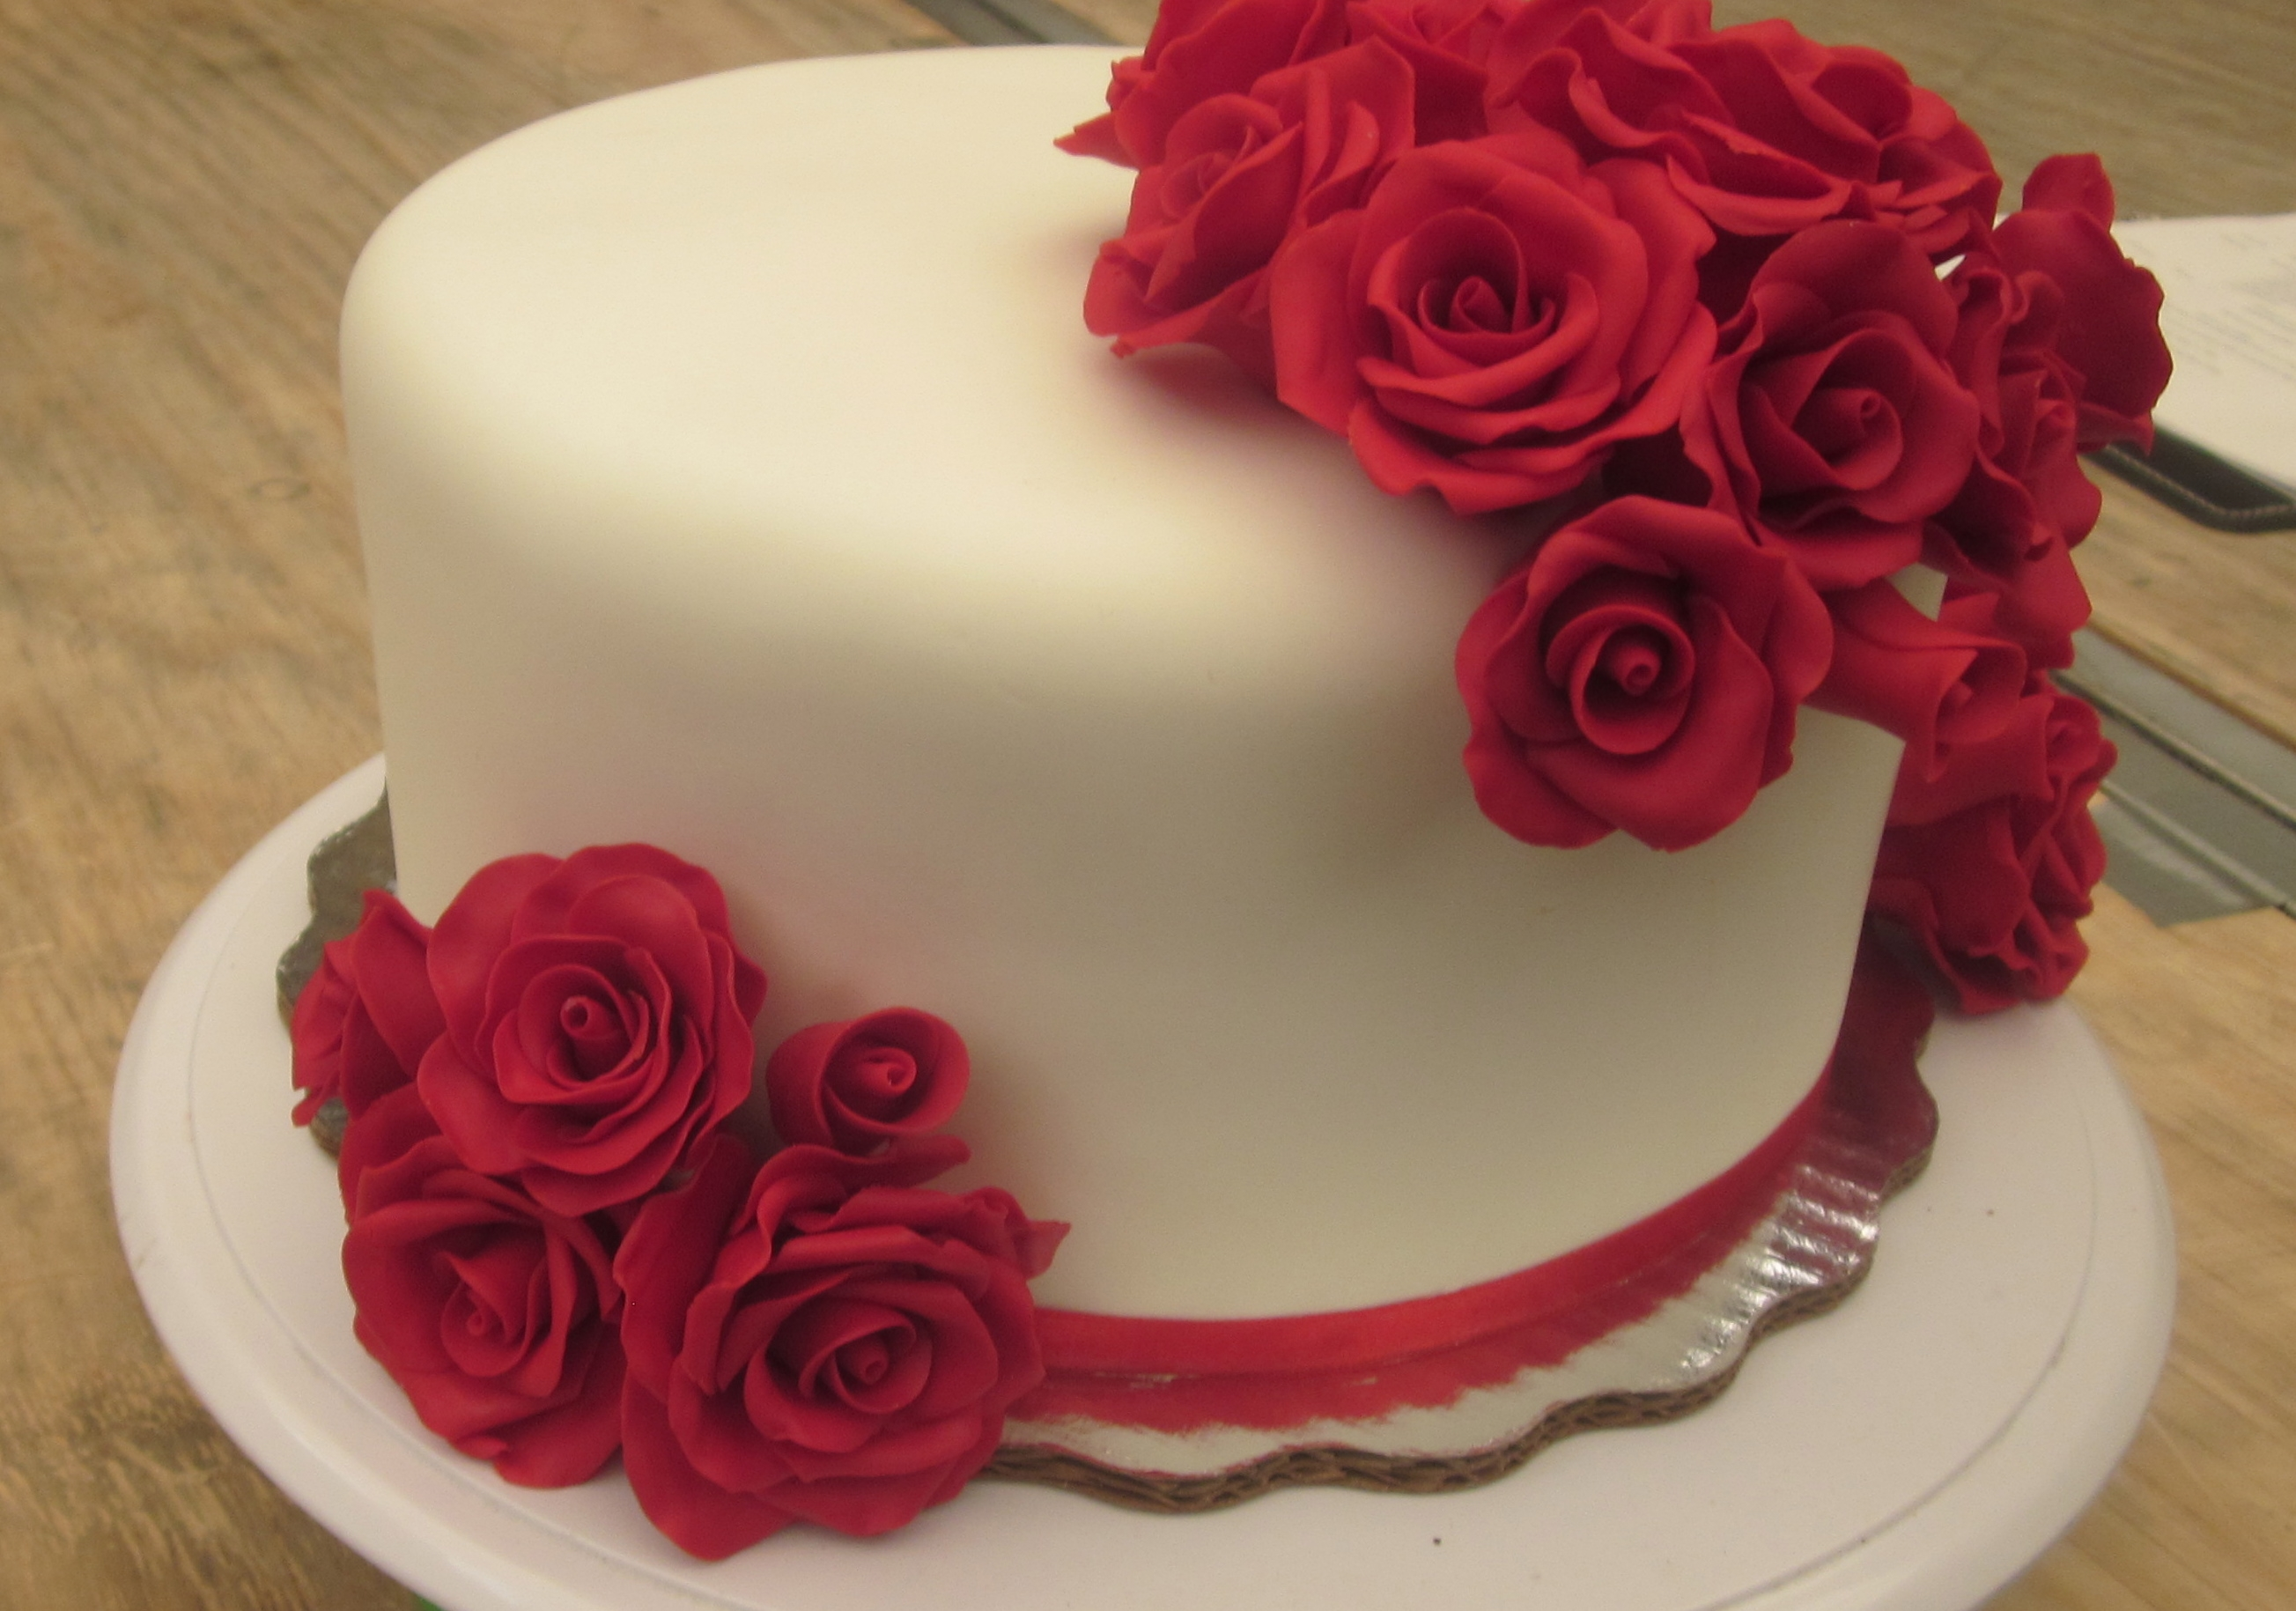 Buttercream Red Roses Cake